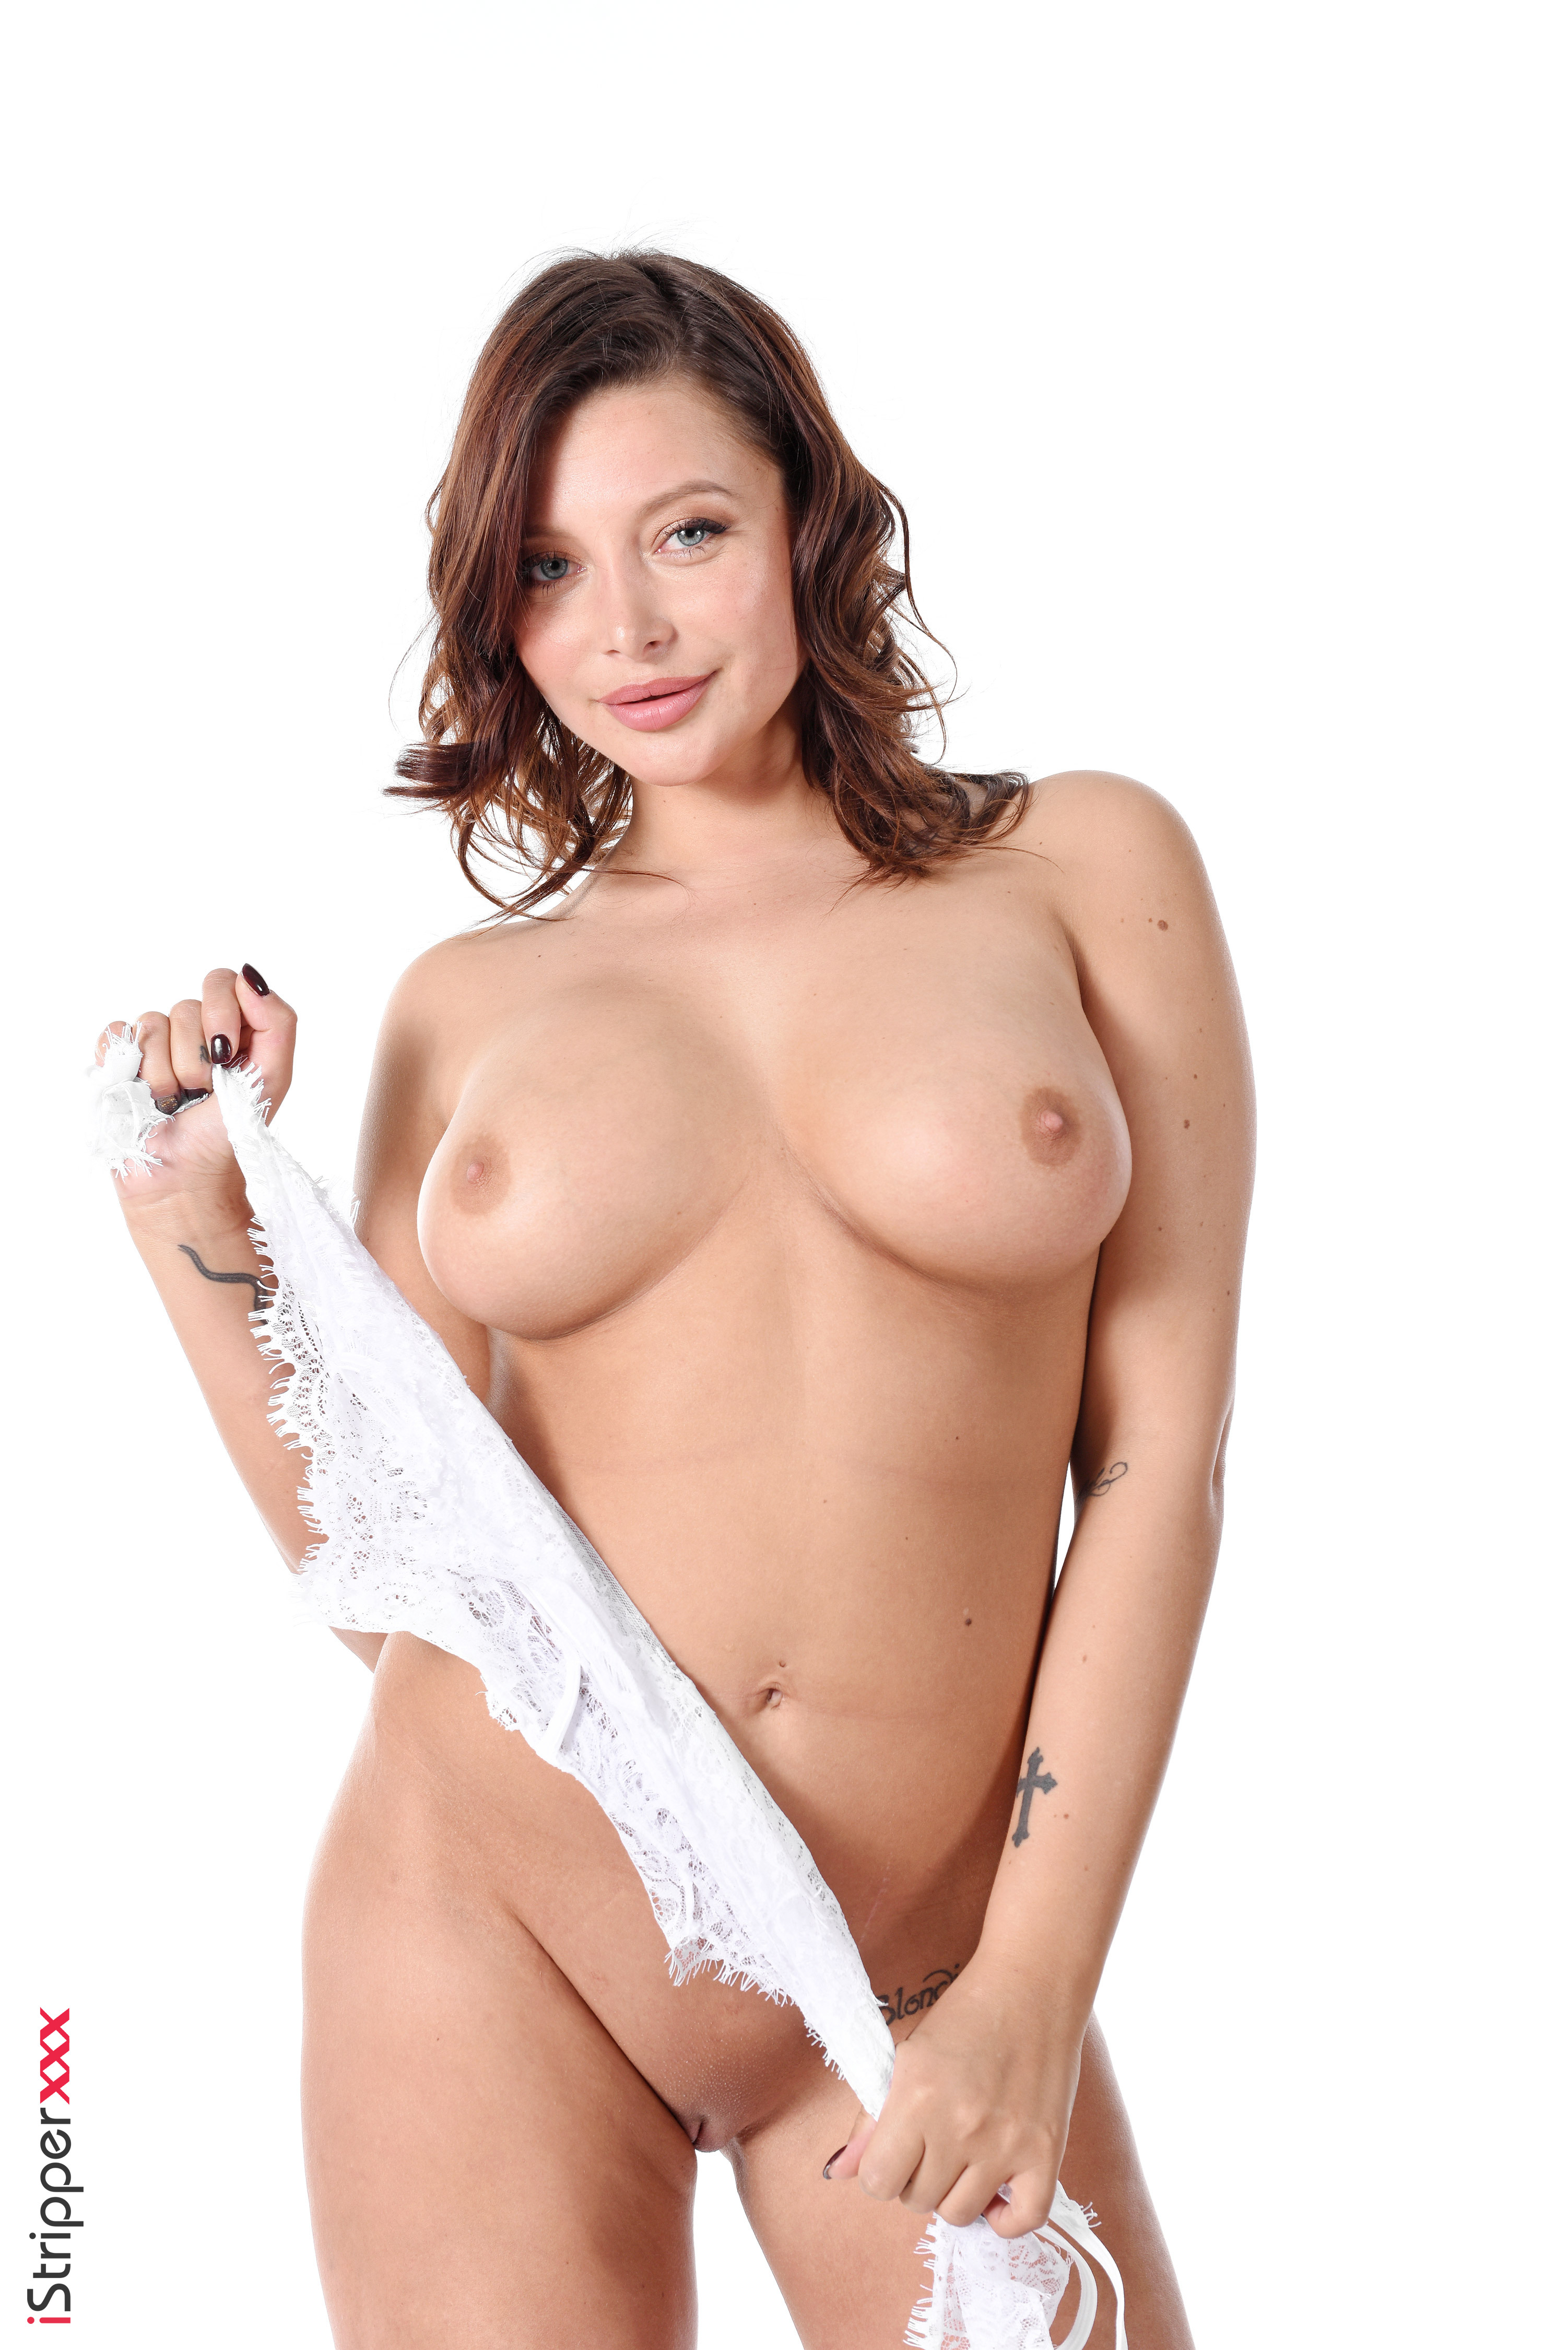 naked lady wallpapers